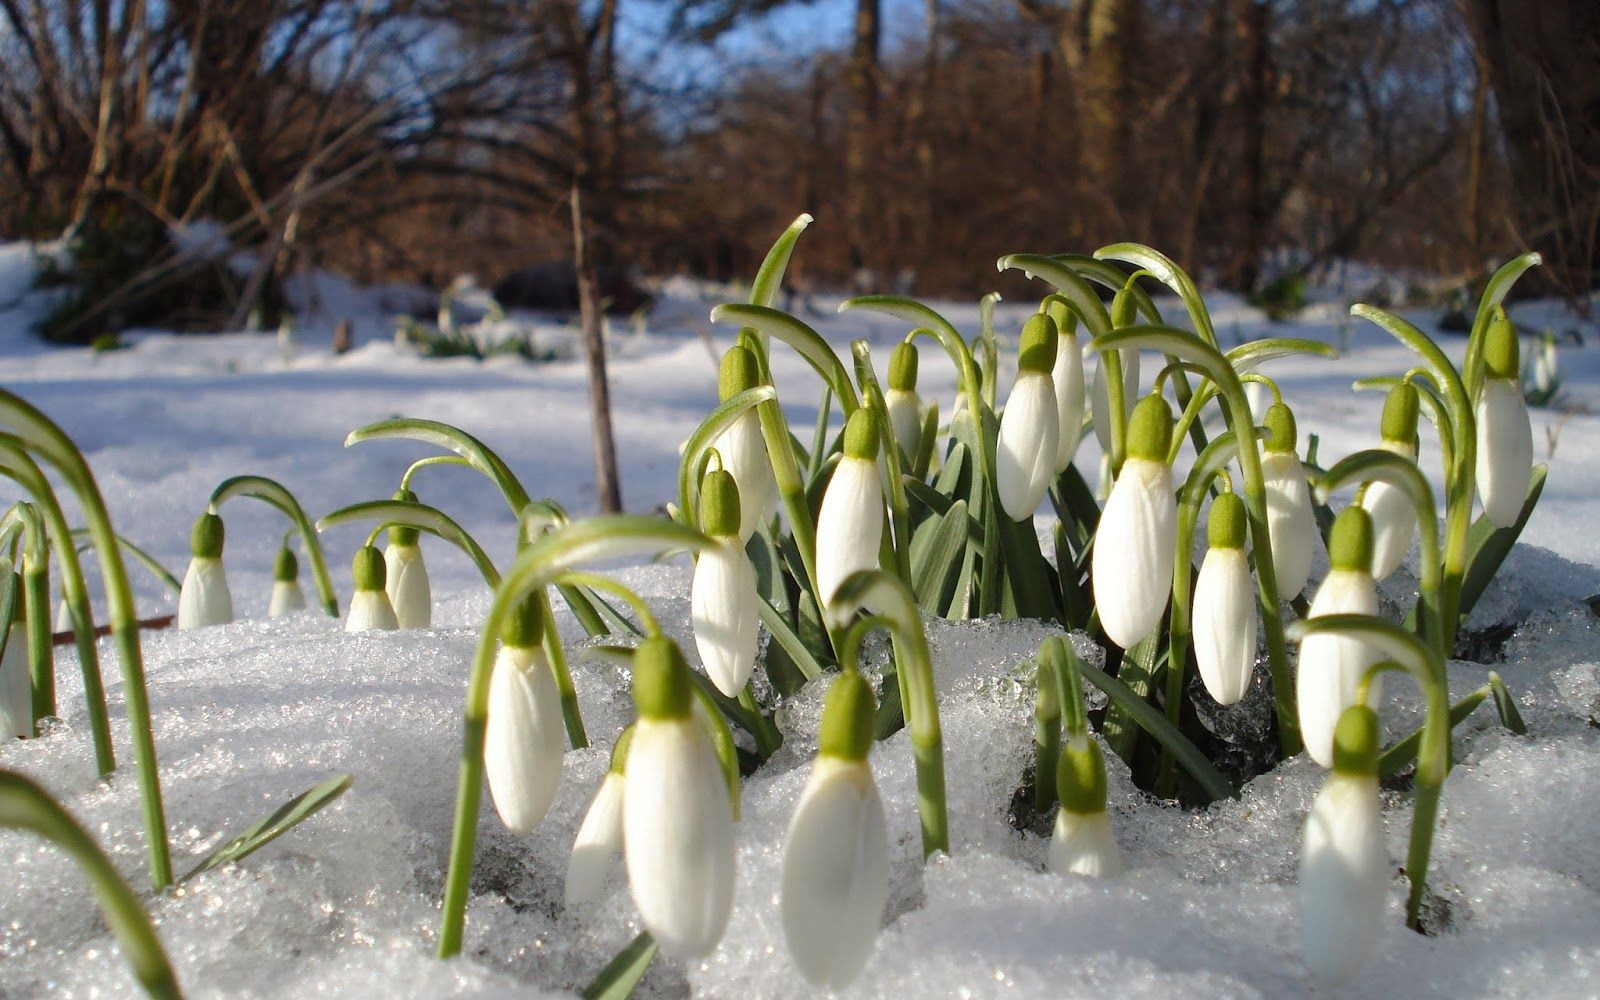 How To Plant And Grow Snowdrops With Images Spring Flowering Bulbs Early Spring Flowers Bulb Flowers